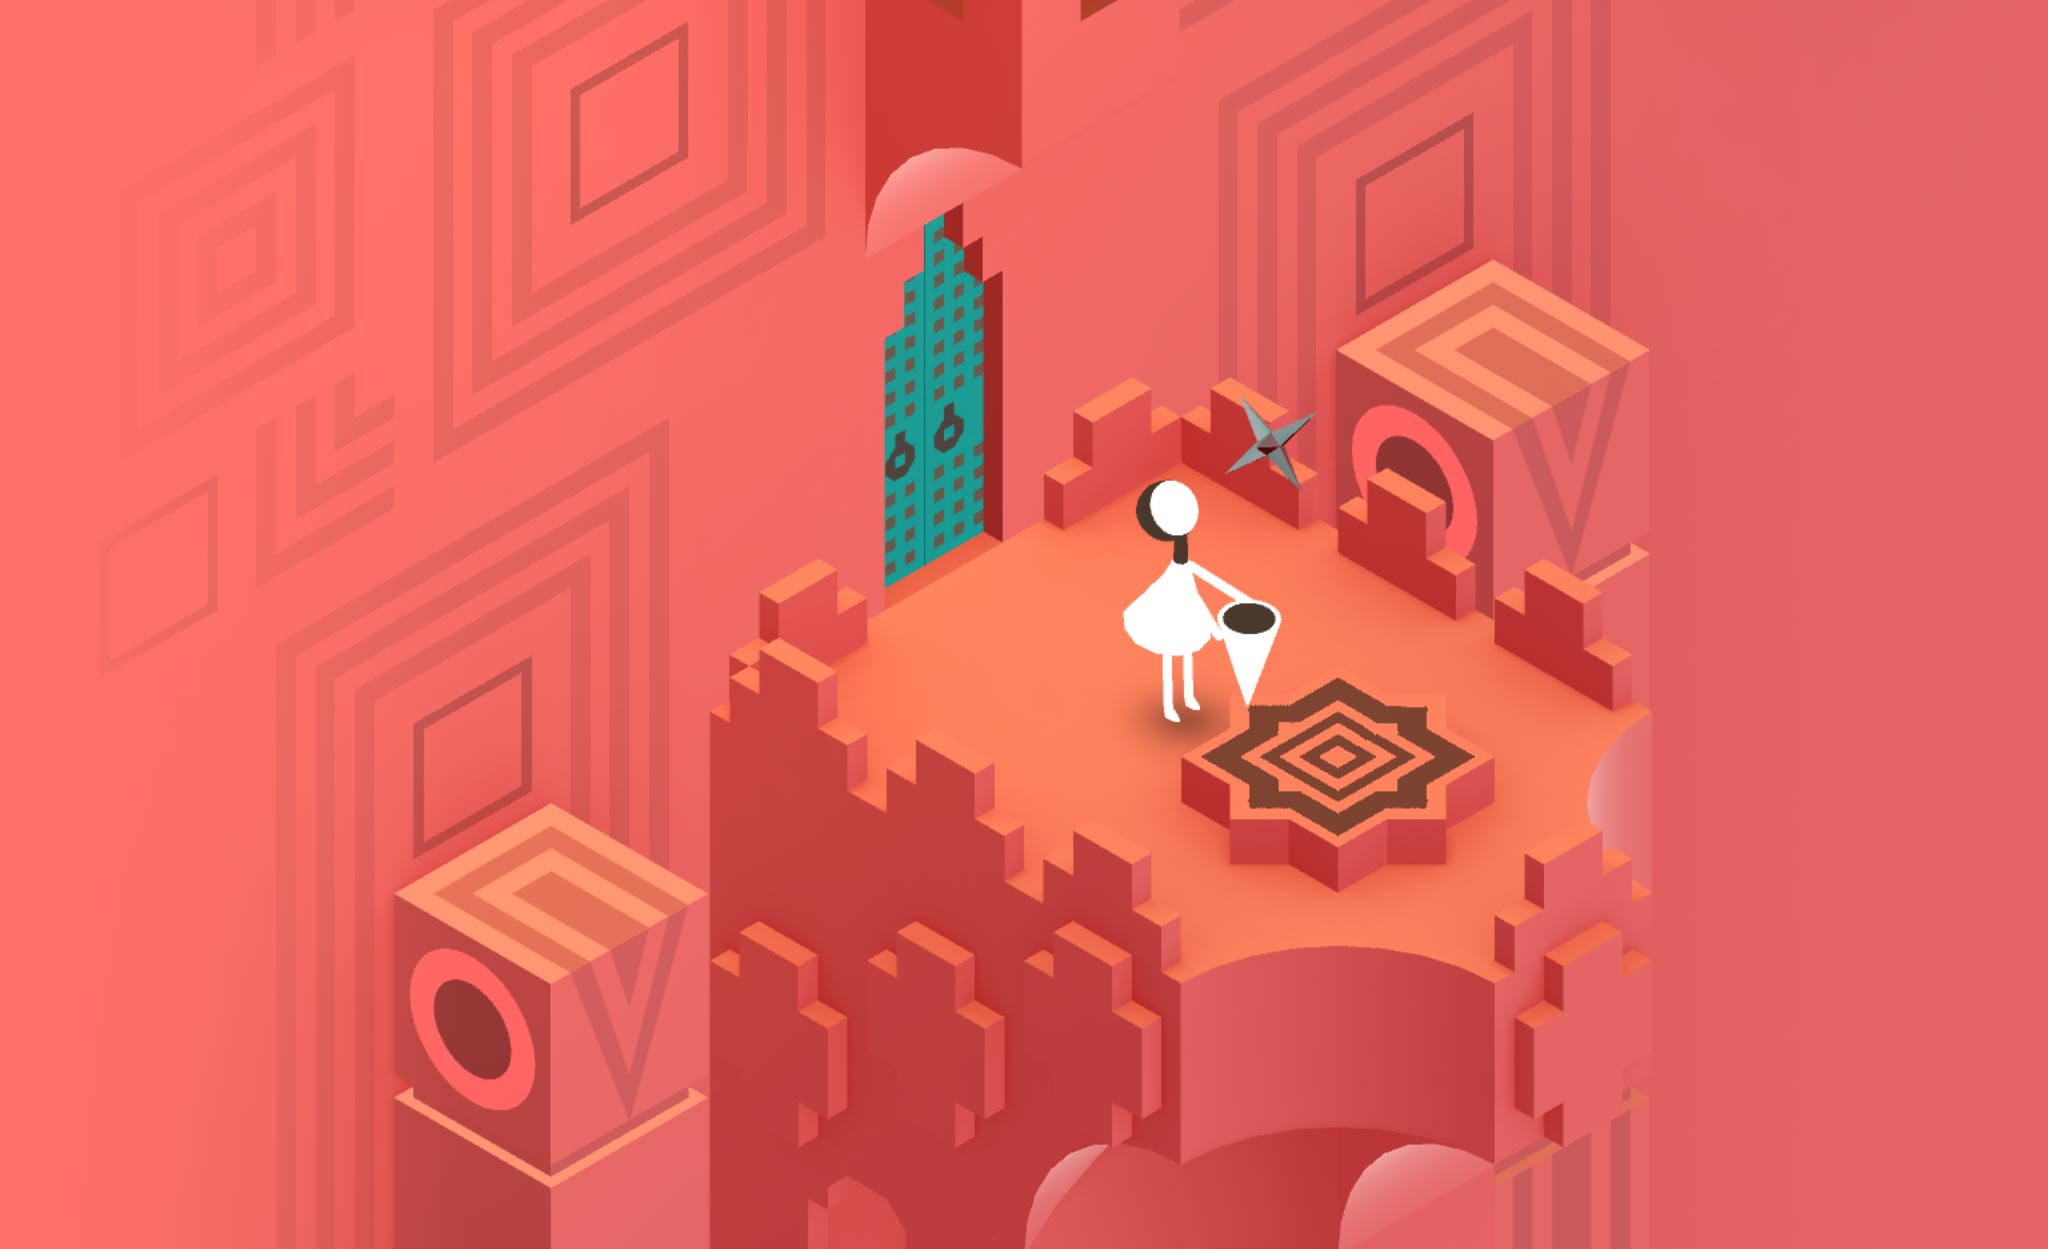 Monument Valley 3 is currently in development screenshot